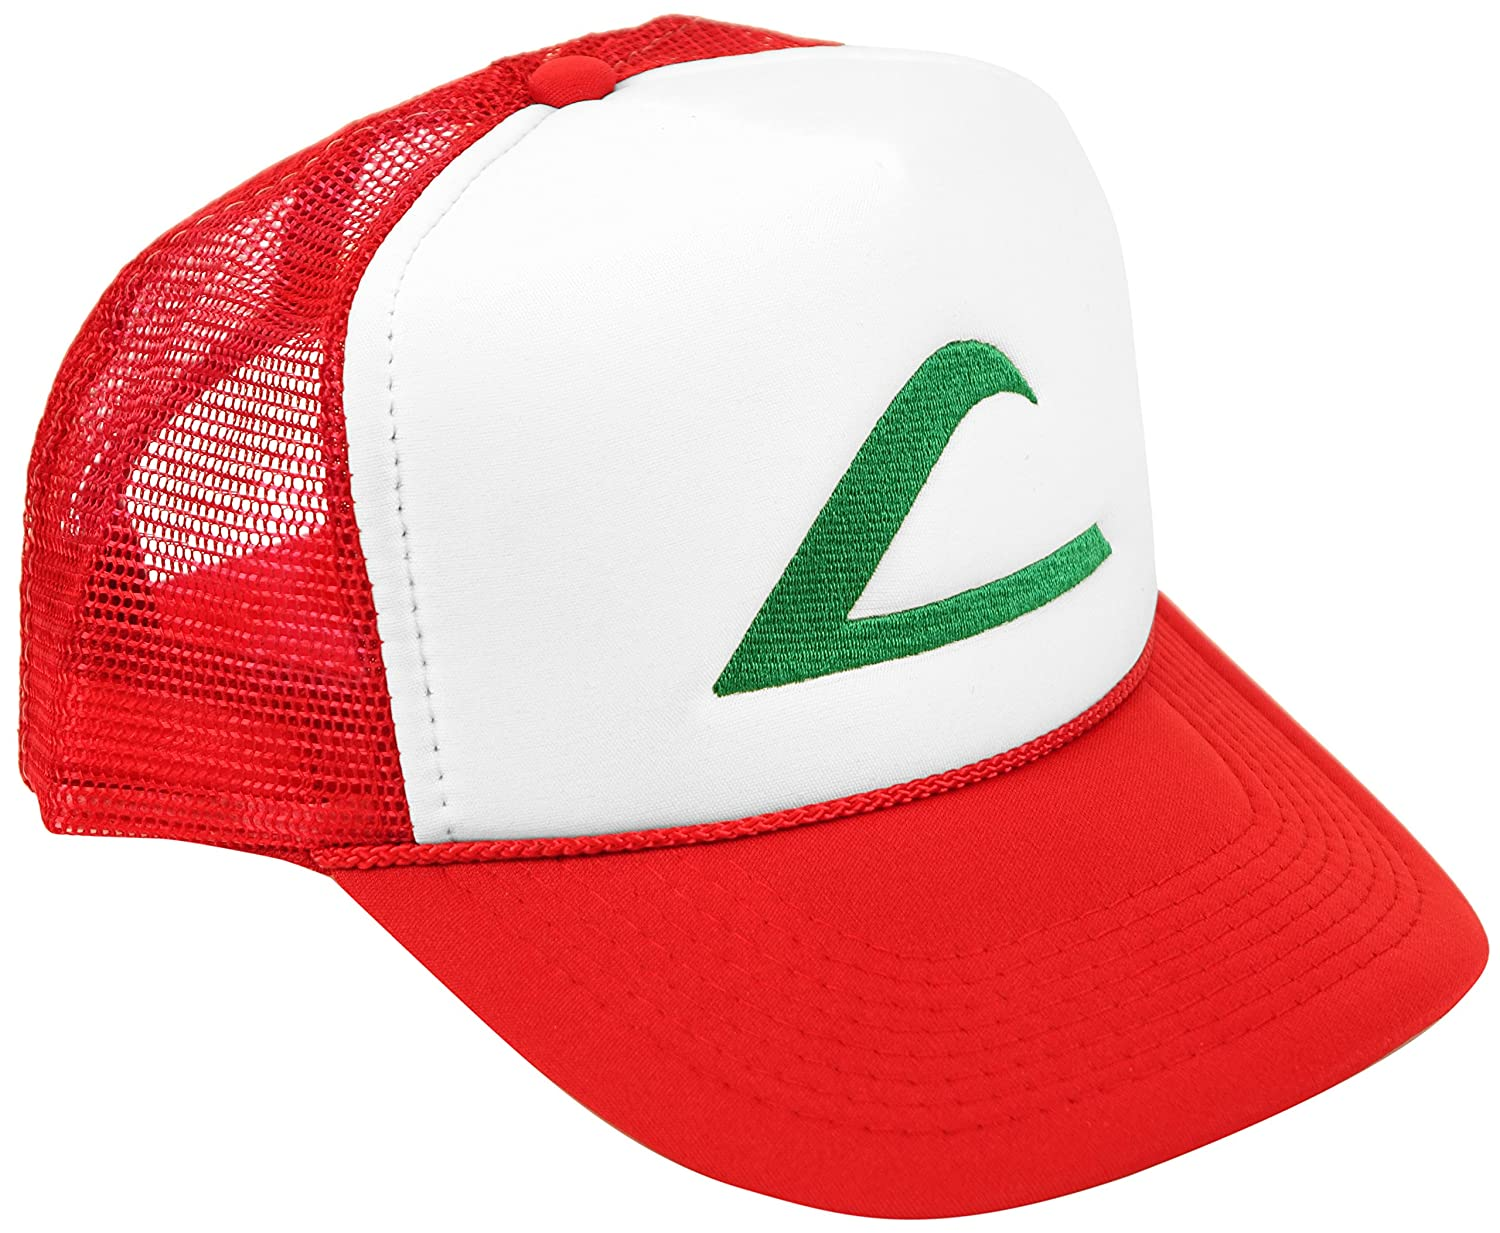 Ash Ketchum Cosplay Hat Mesh Cap with Plastic Snap Closure - Adult & Youth Sizes SPC-Pokemon-C